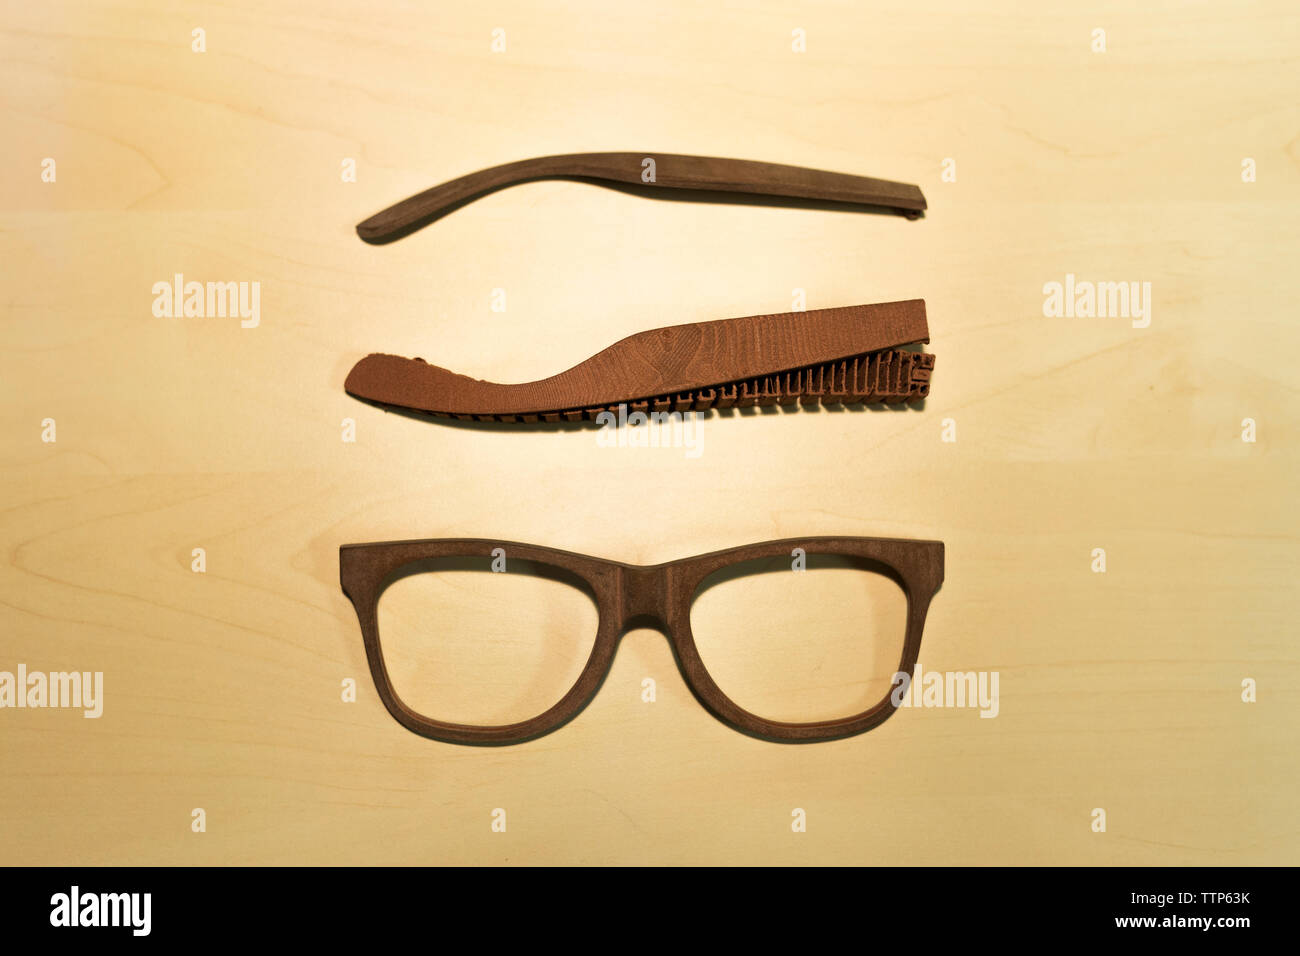 Overhead view of disassembled 3-D glasses on wooden table in office - Stock Image